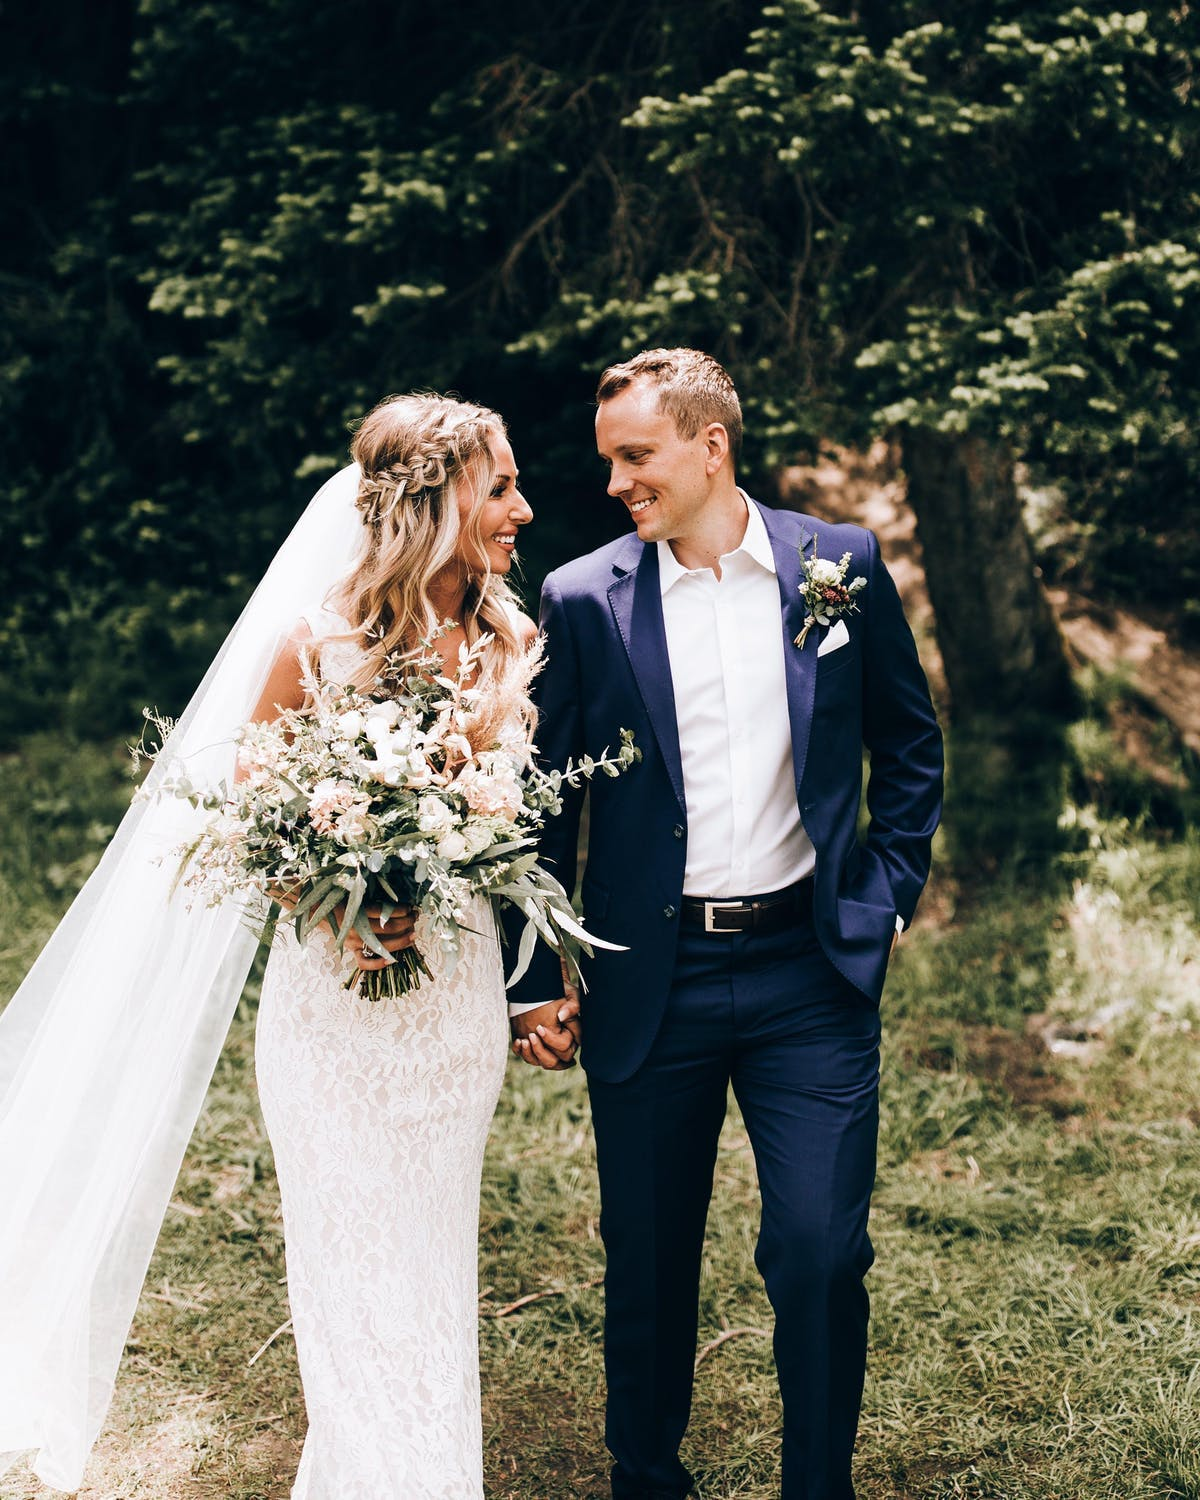 when should I order my wedding suit